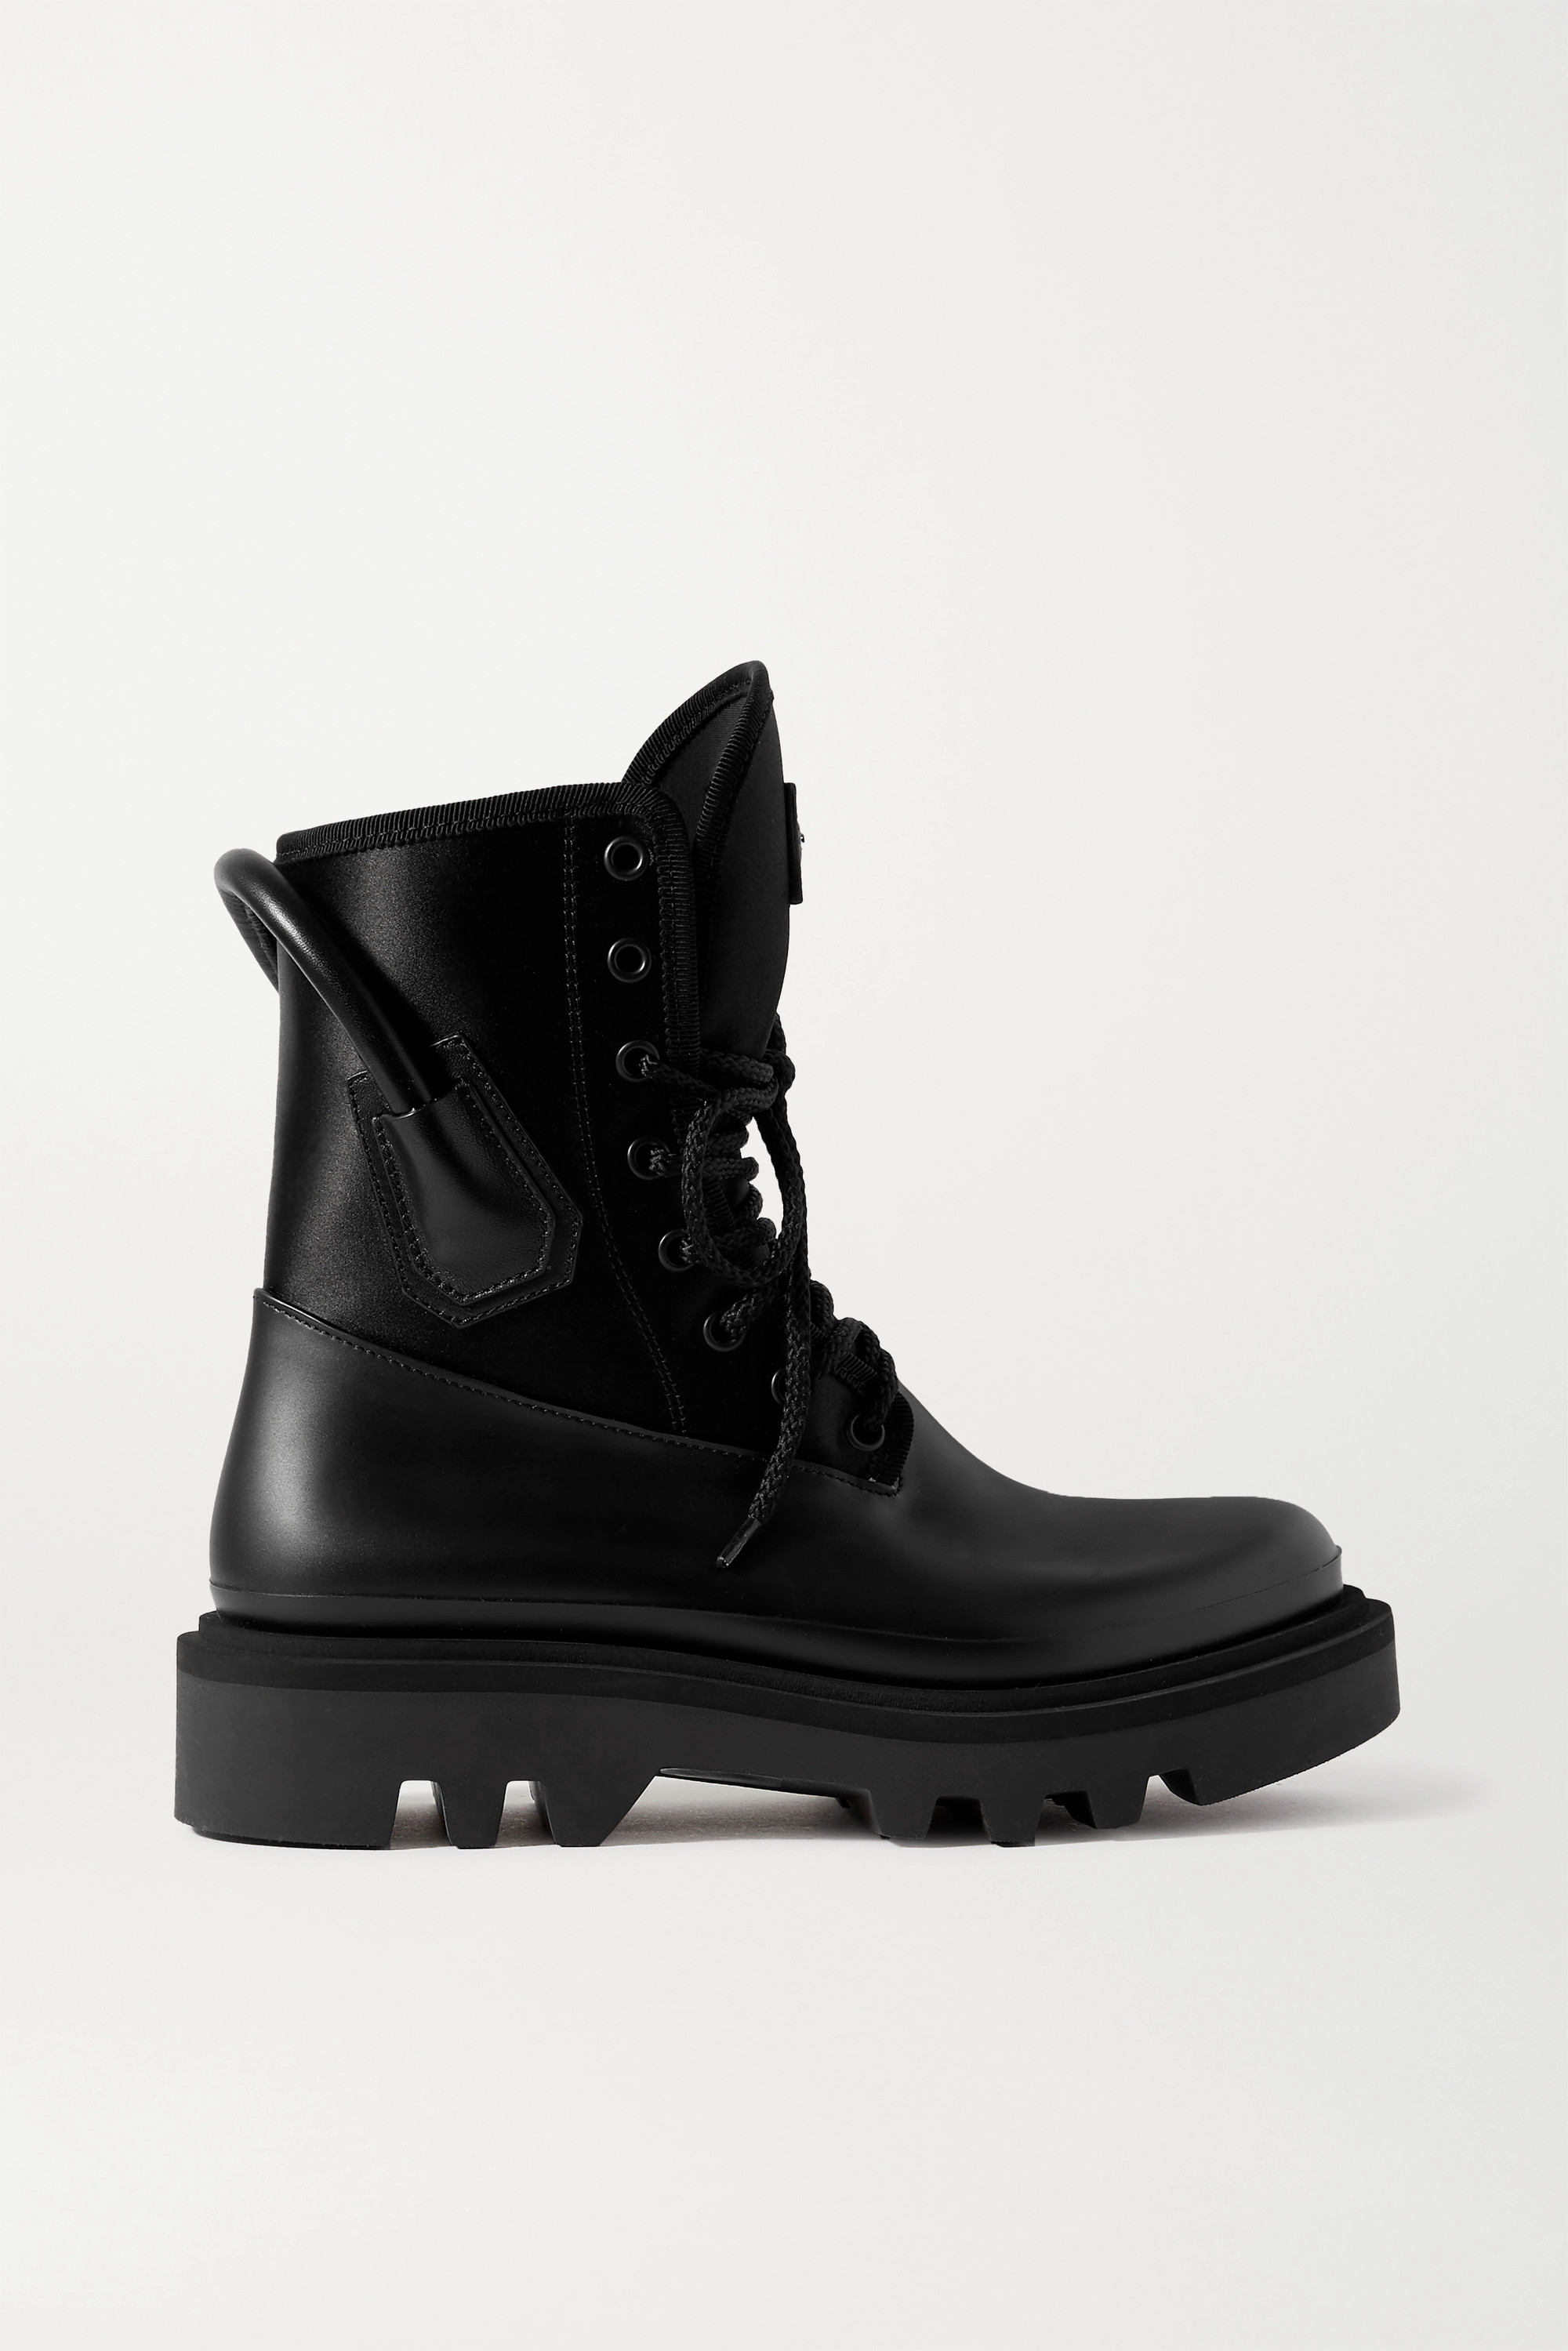 Givenchy Combat leather and neoprene ankle boots